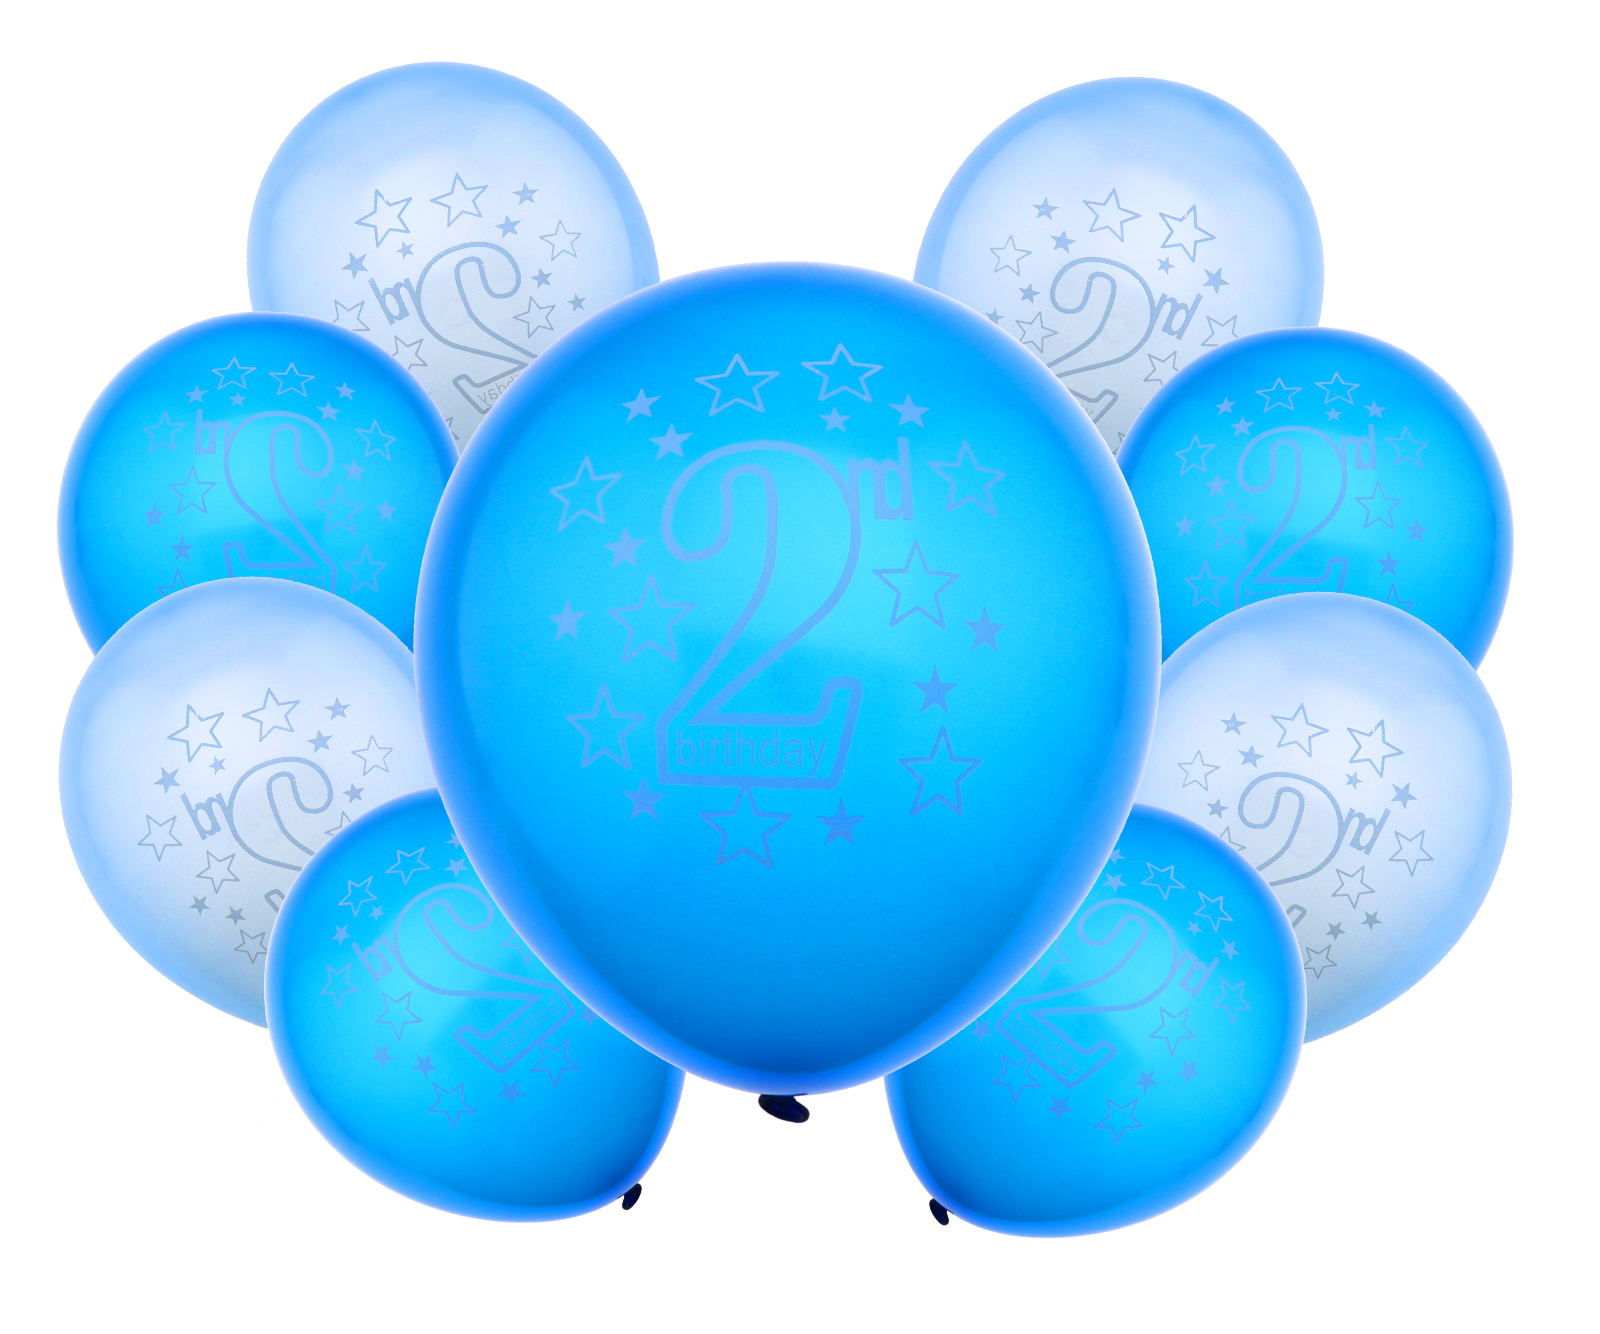 Boys HAPPY BIRTHDAY BALLOONS Age 2nd 2 Mix Blue Packs Of 20 Party Decoration